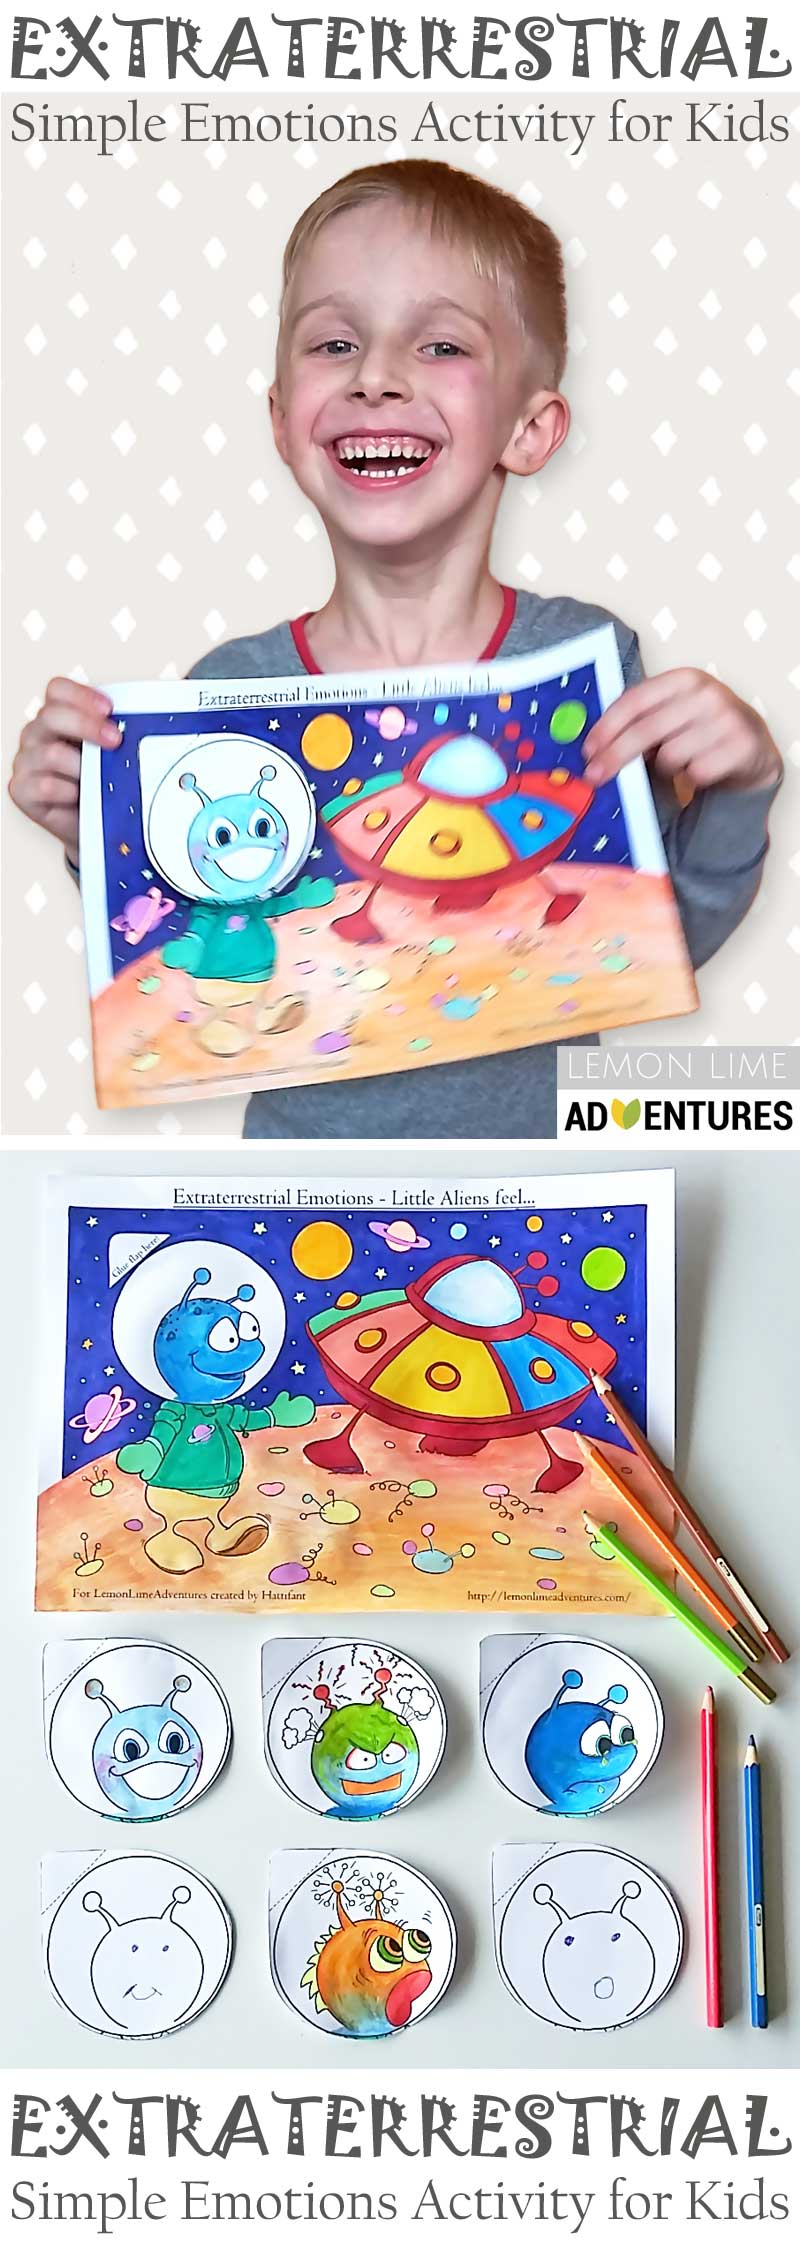 Hattifant's Extraterrestrial Emotions Kids Activity to color and craft in collab with LemonLime Adventures